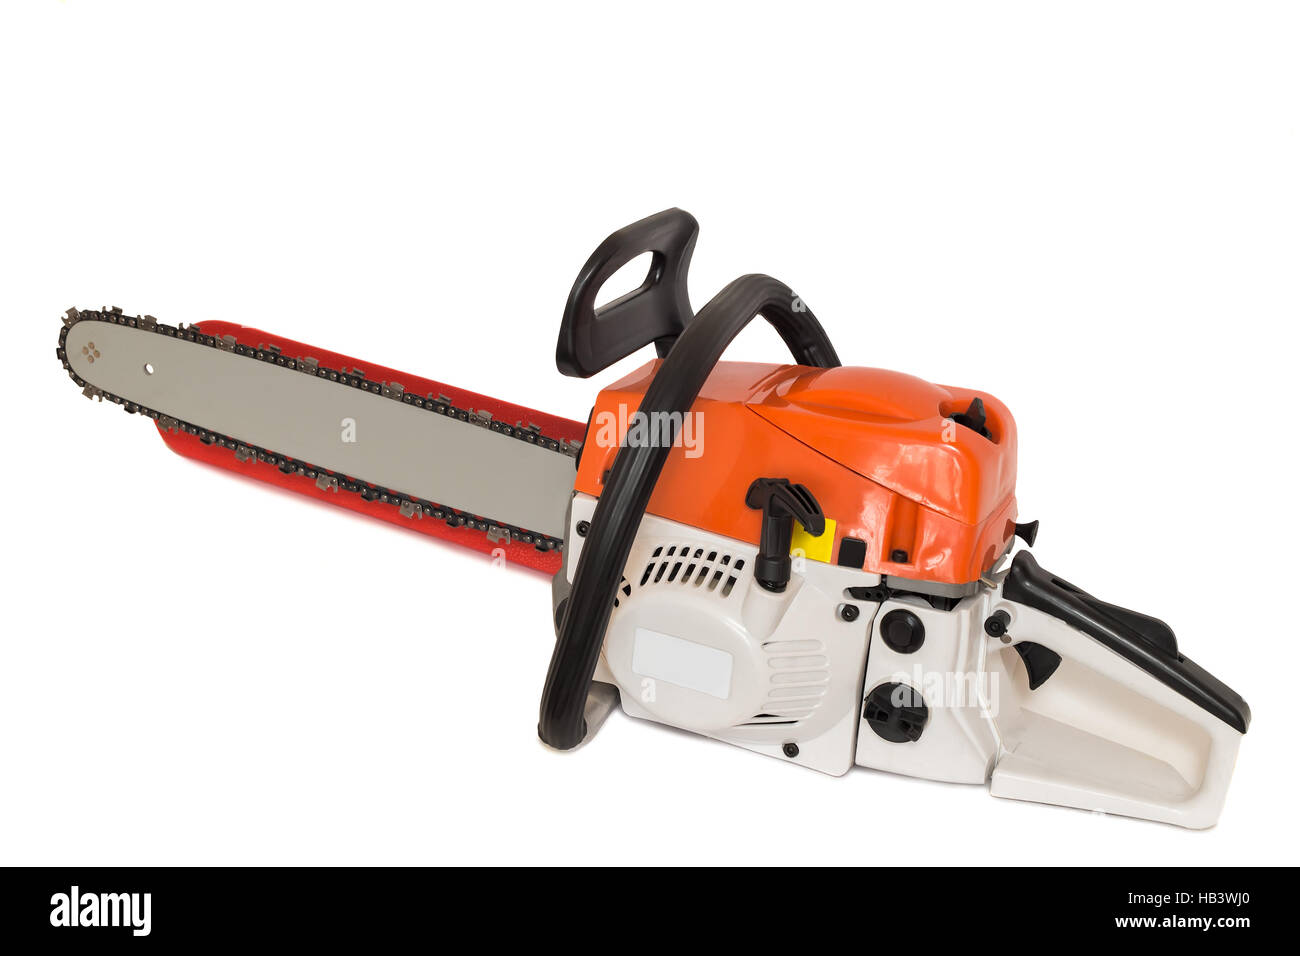 Chainsaw on a white background. Stock Photo